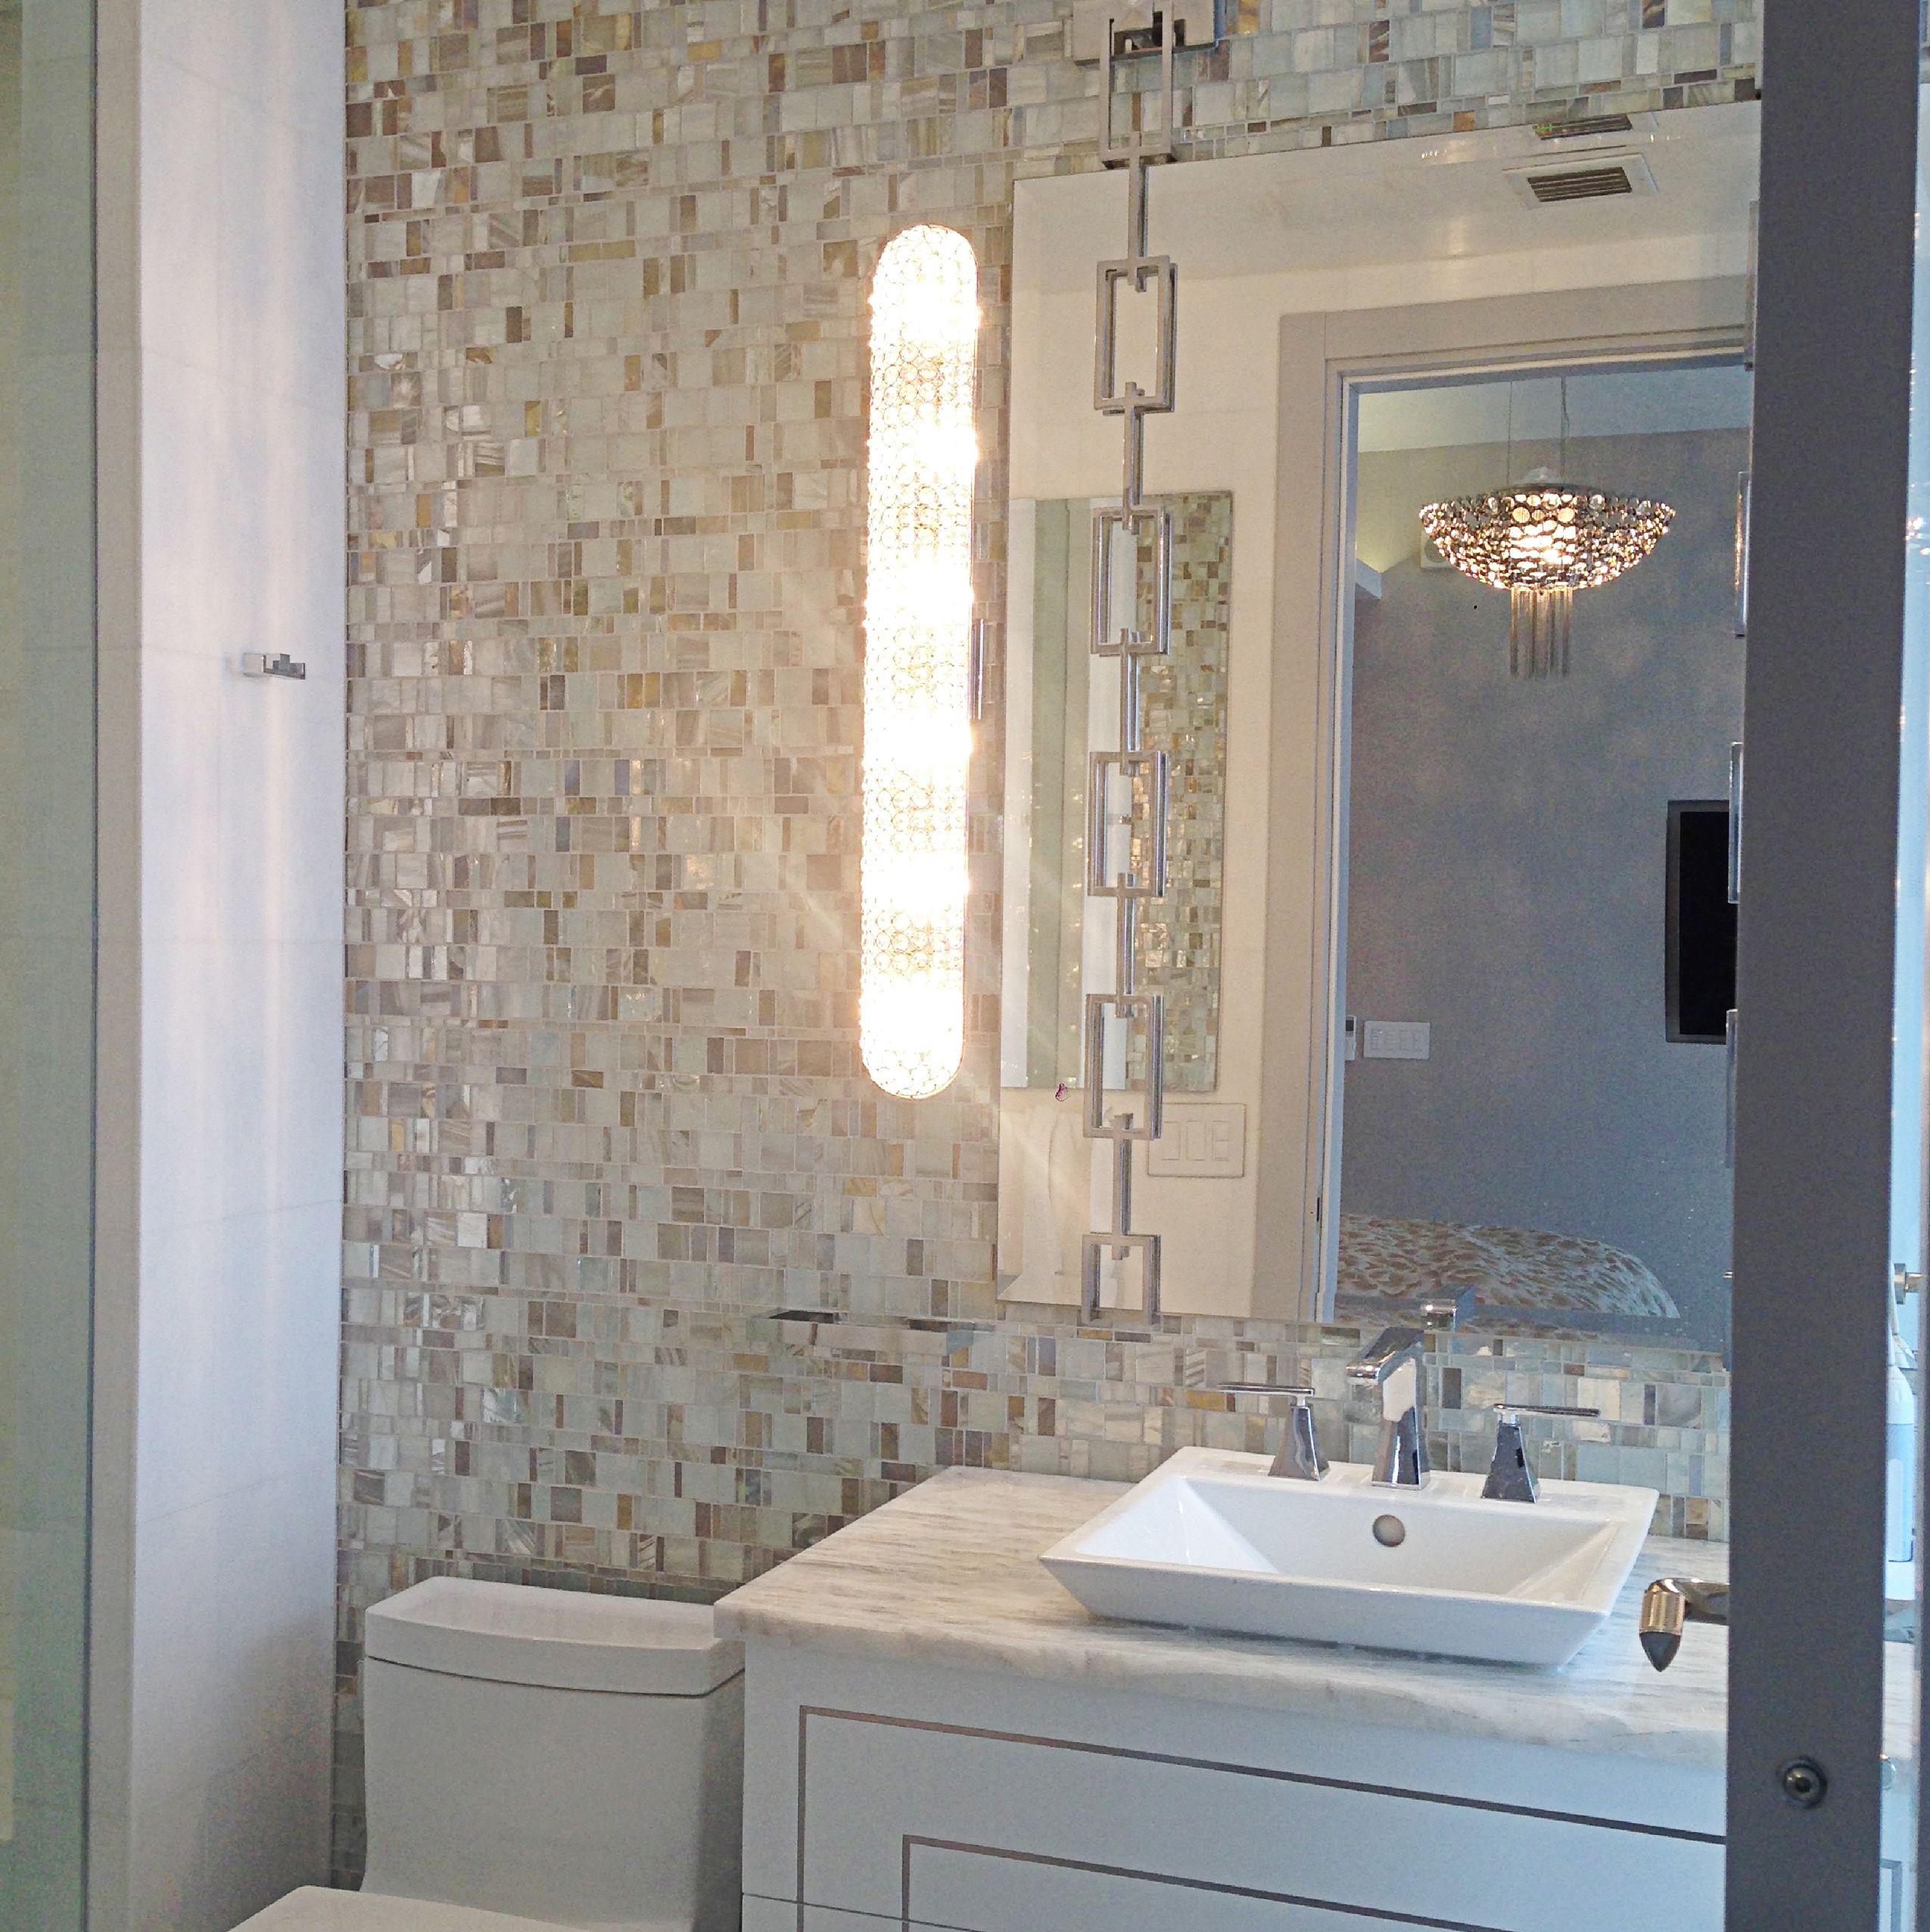 This Bathroom Has A Mosaic Tile On The Wall Called Liberty Opal